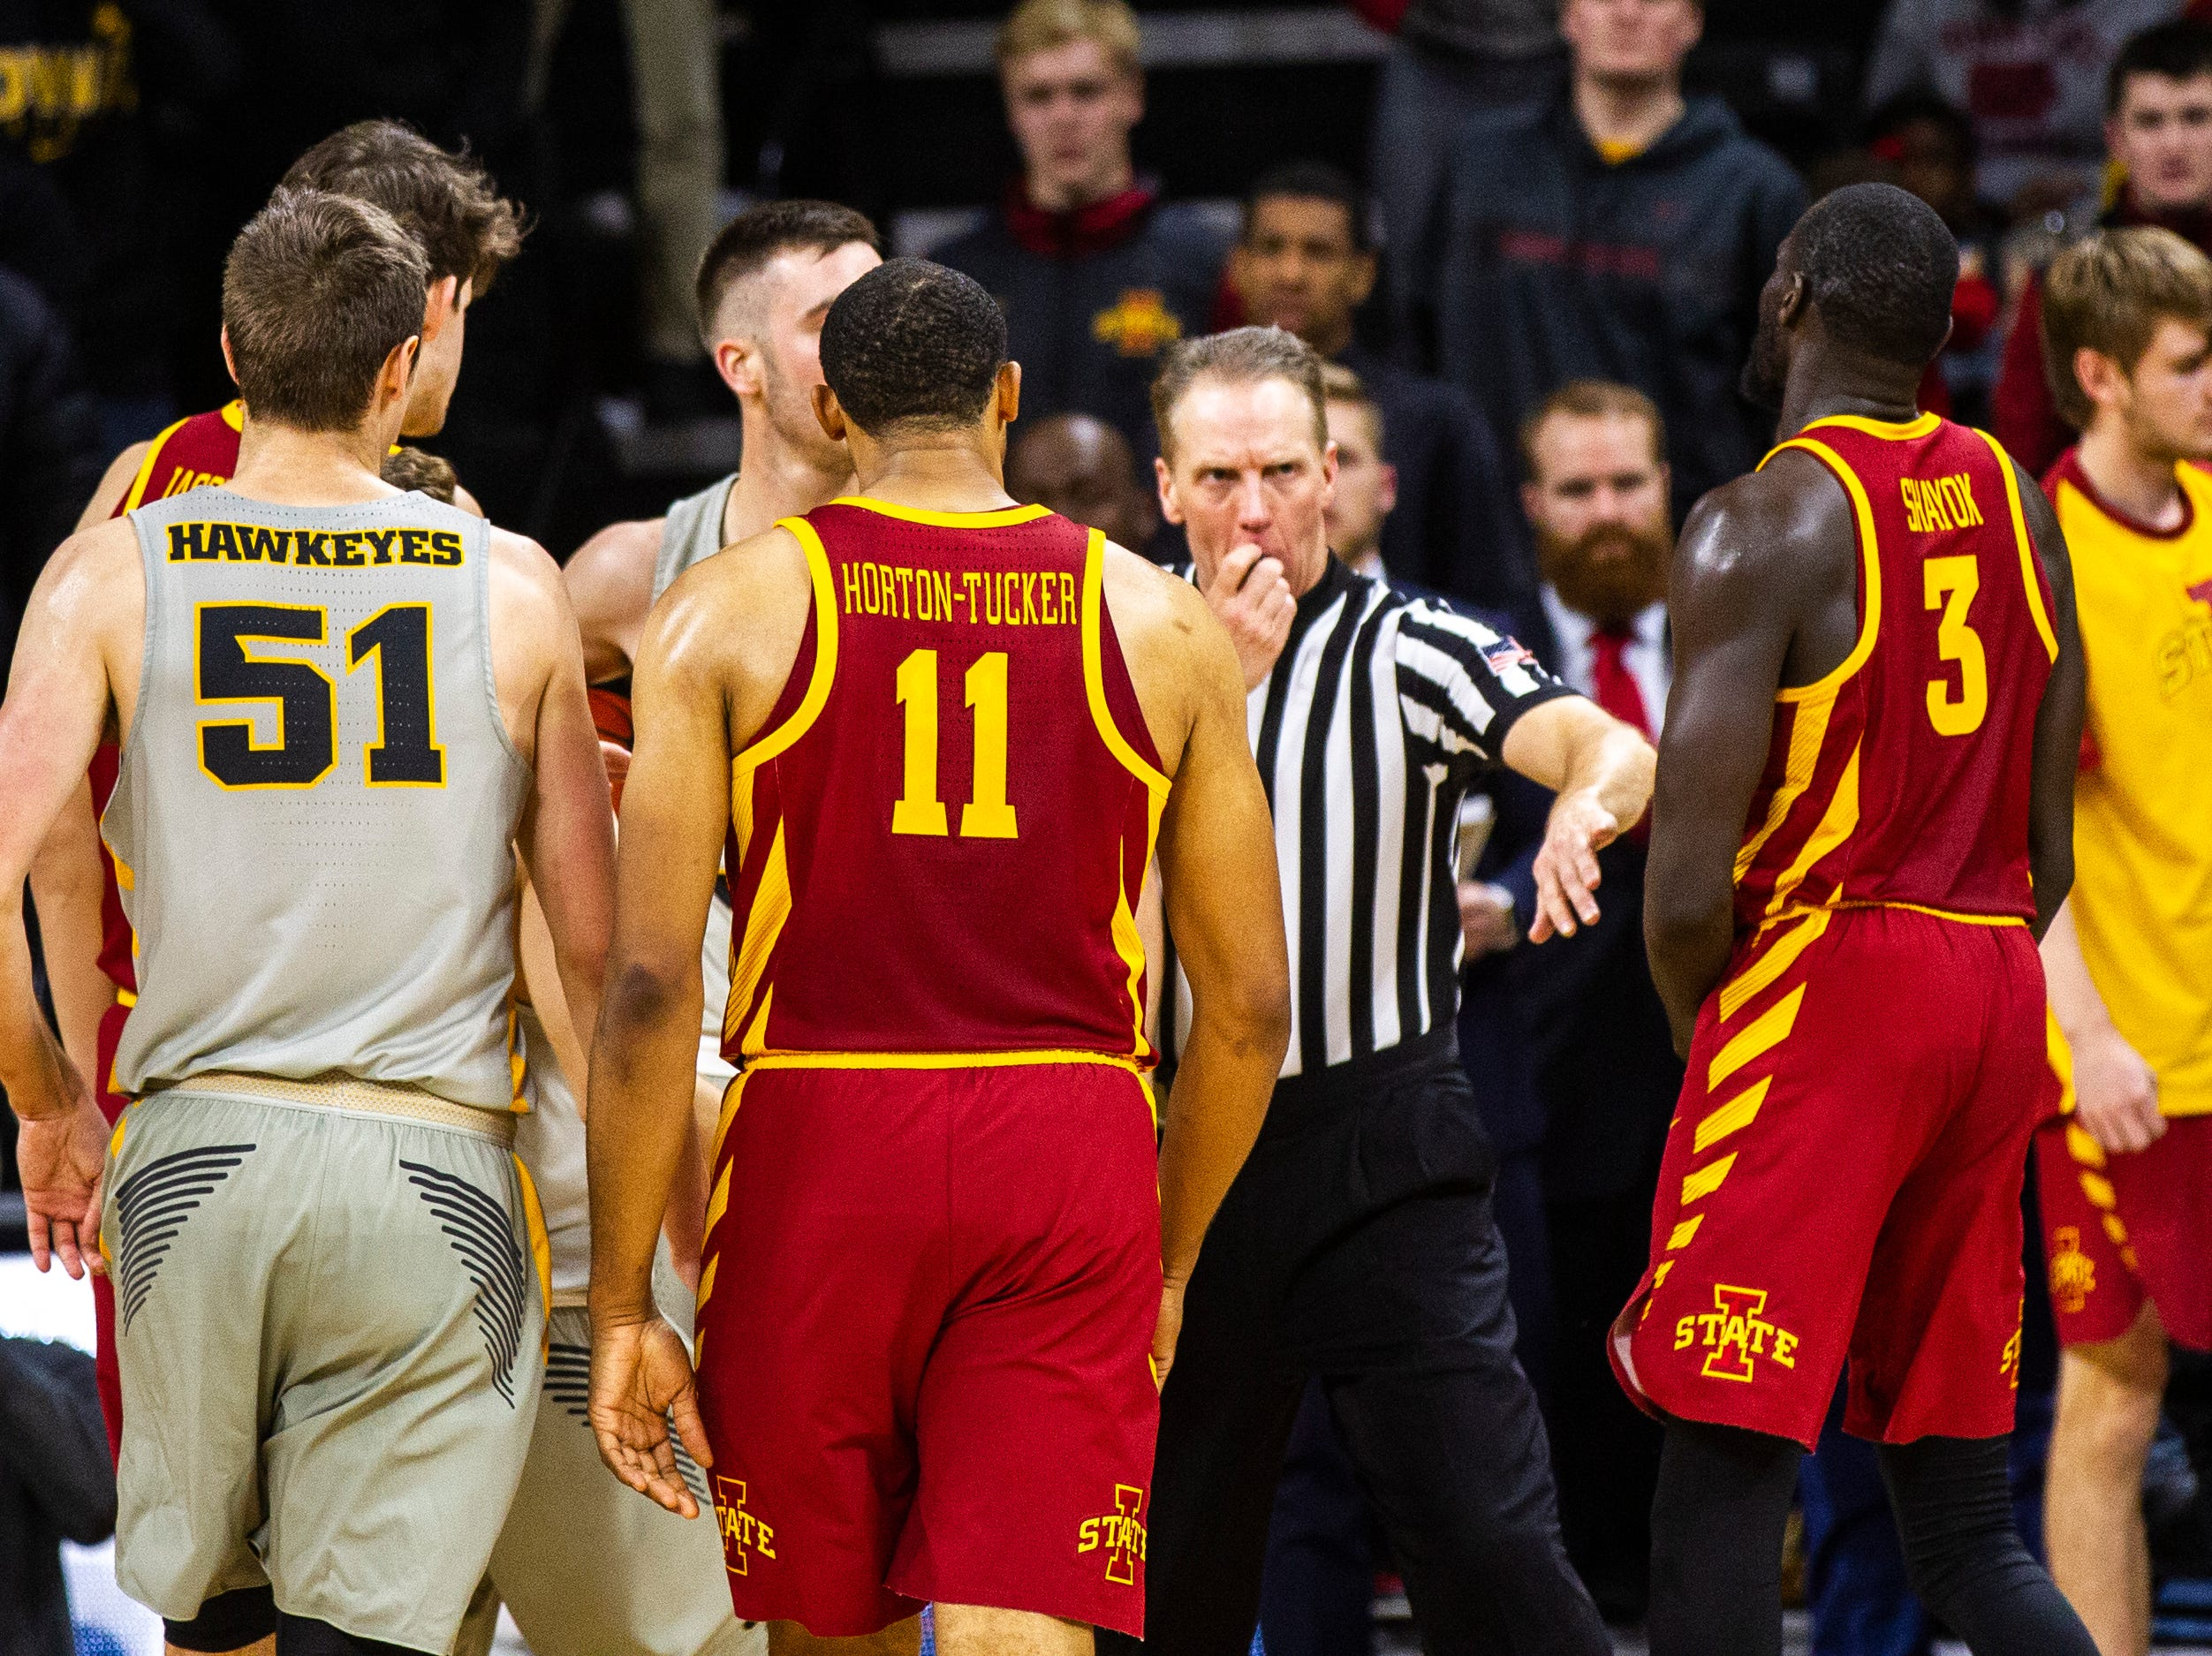 An official separates Iowa State guard Marial Shayok (3) from Iowa guard Connor McCaffery (30) at the buzzer after a NCAA Cy-Hawk series men's basketball game on Thursday, Dec. 6, 2018, at Carver-Hawkeye Arena in Iowa City.